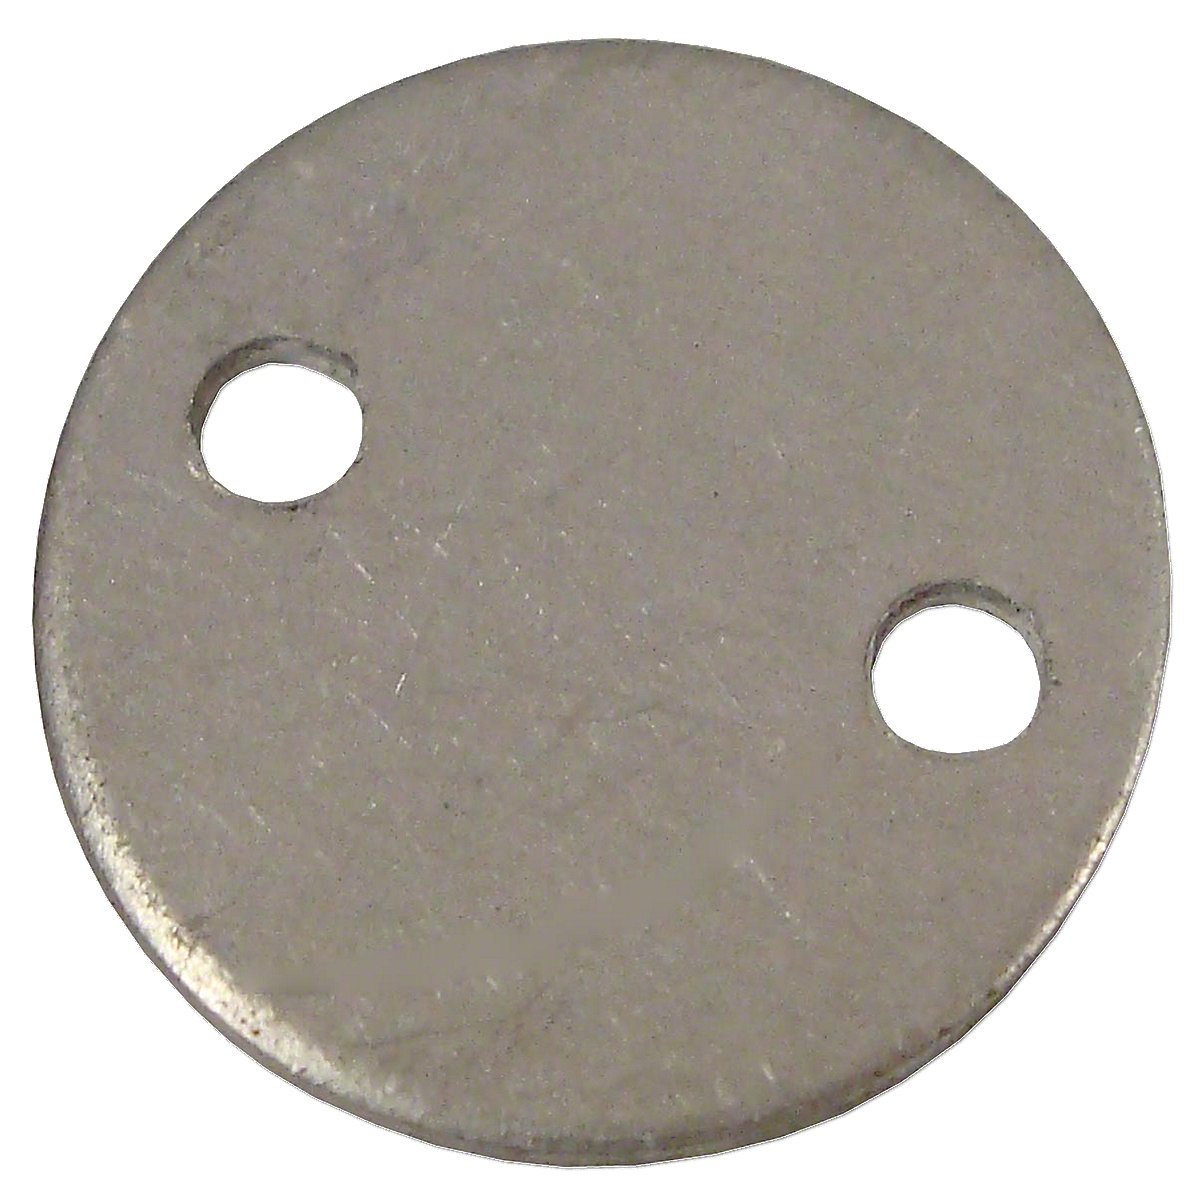 Marvel Schebler Throttle Butterfly Disc For Allis Chalmers: B, C, CA, IB, RC, WC, WD, WF